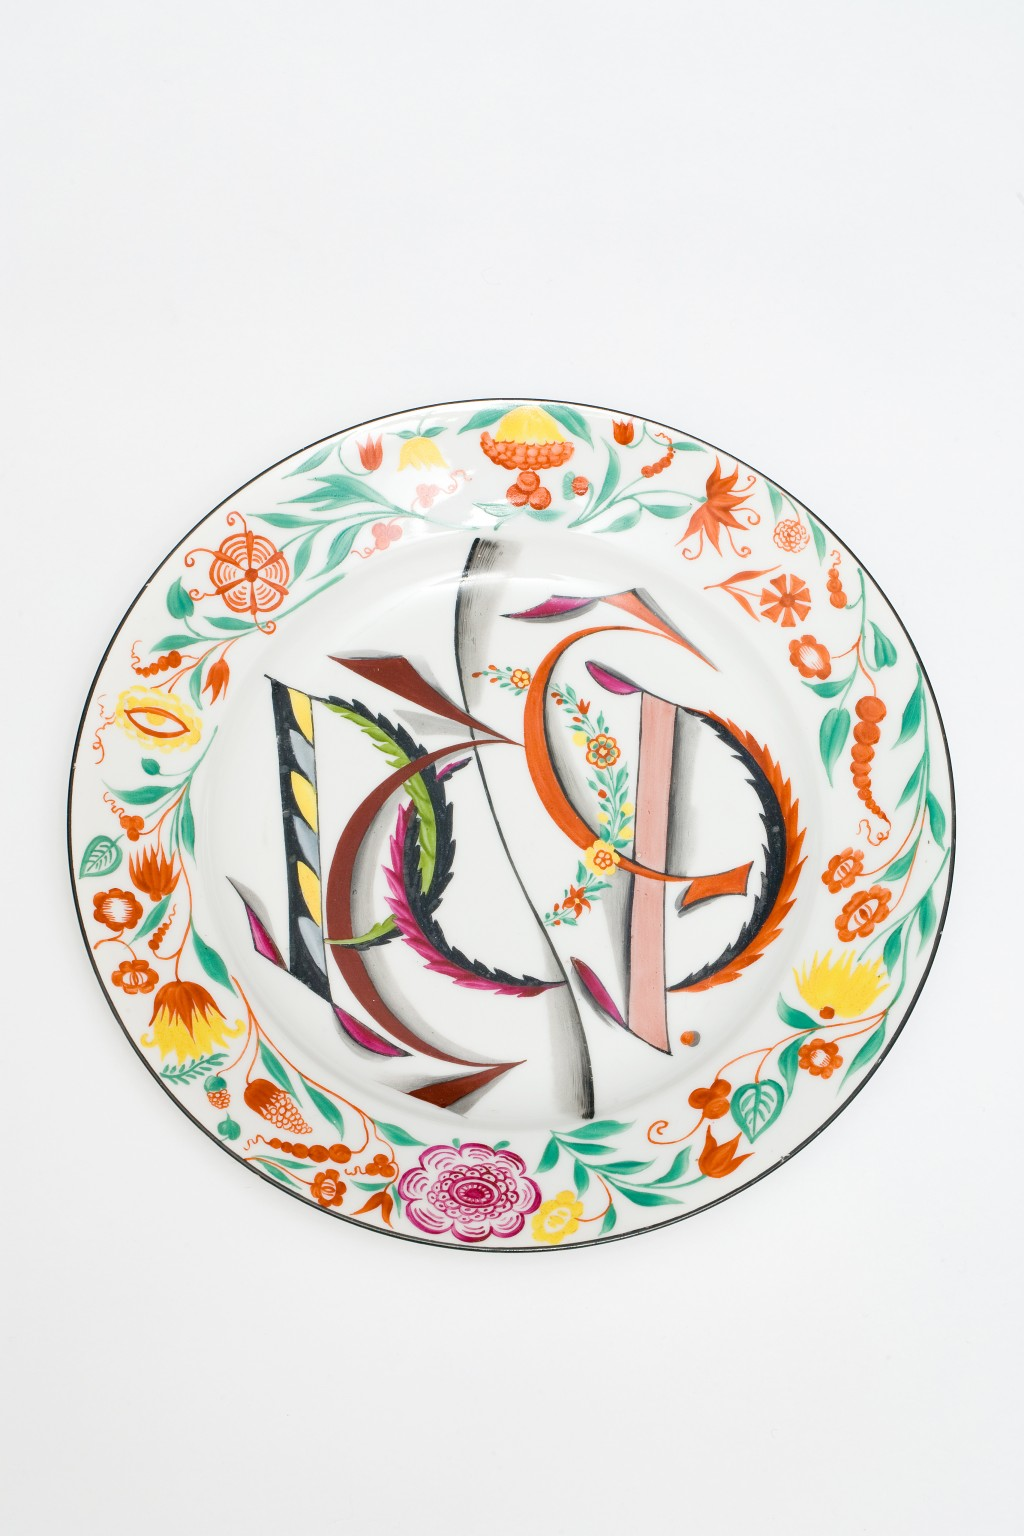 COMMEMORATIVE PLATE, SOVIET STATE PORCELAIN FACTORY, C.1921